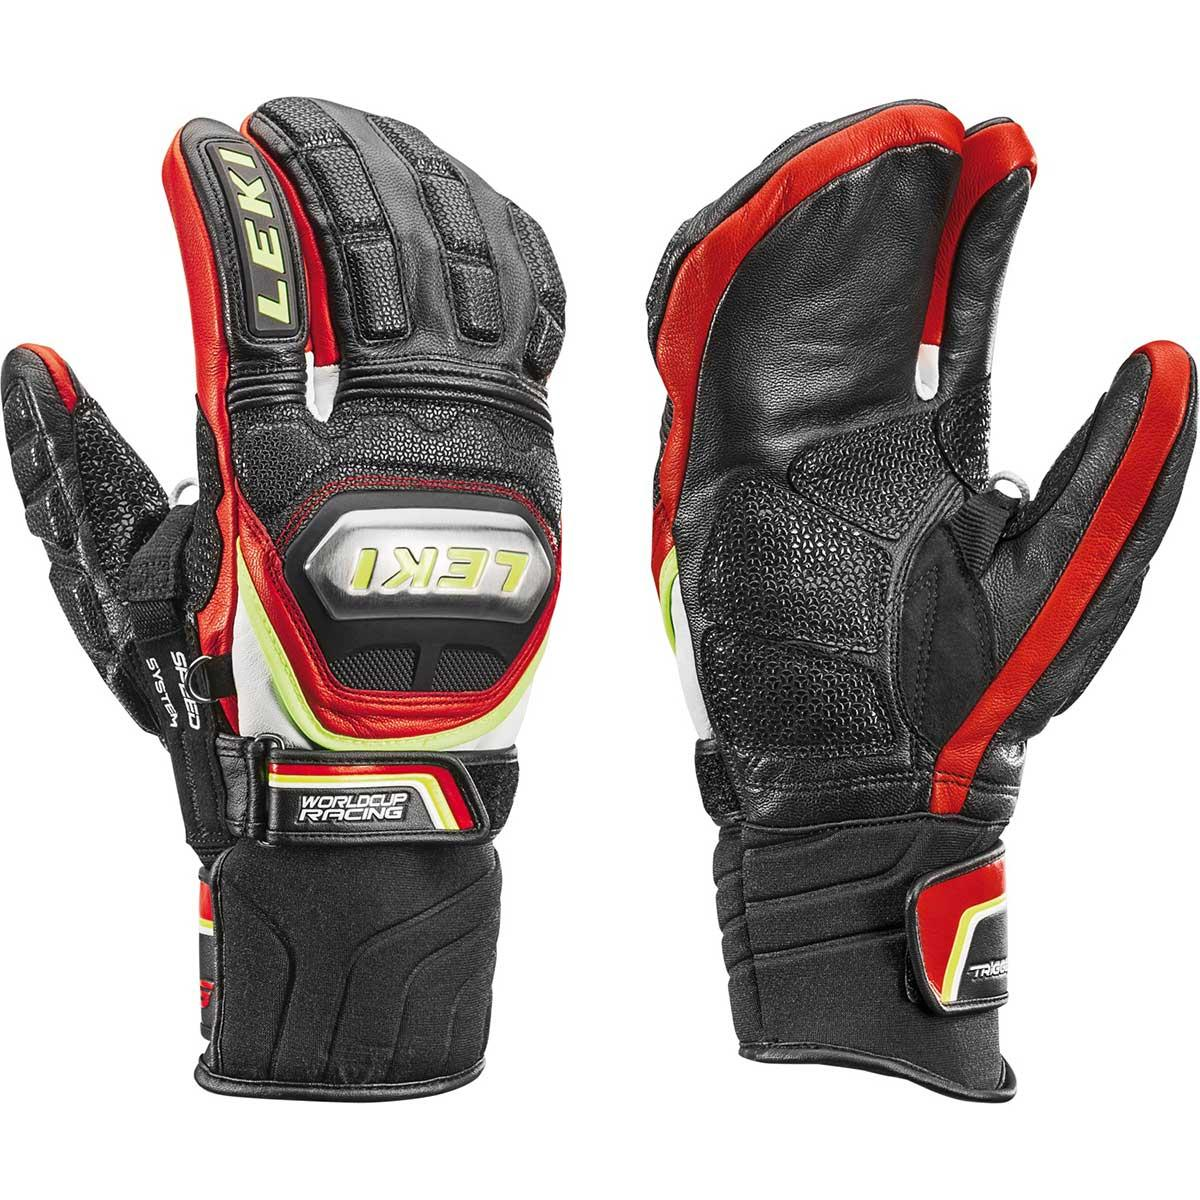 Leki Worldcup Racing Ti S Lobster Glove in black and red and yellow